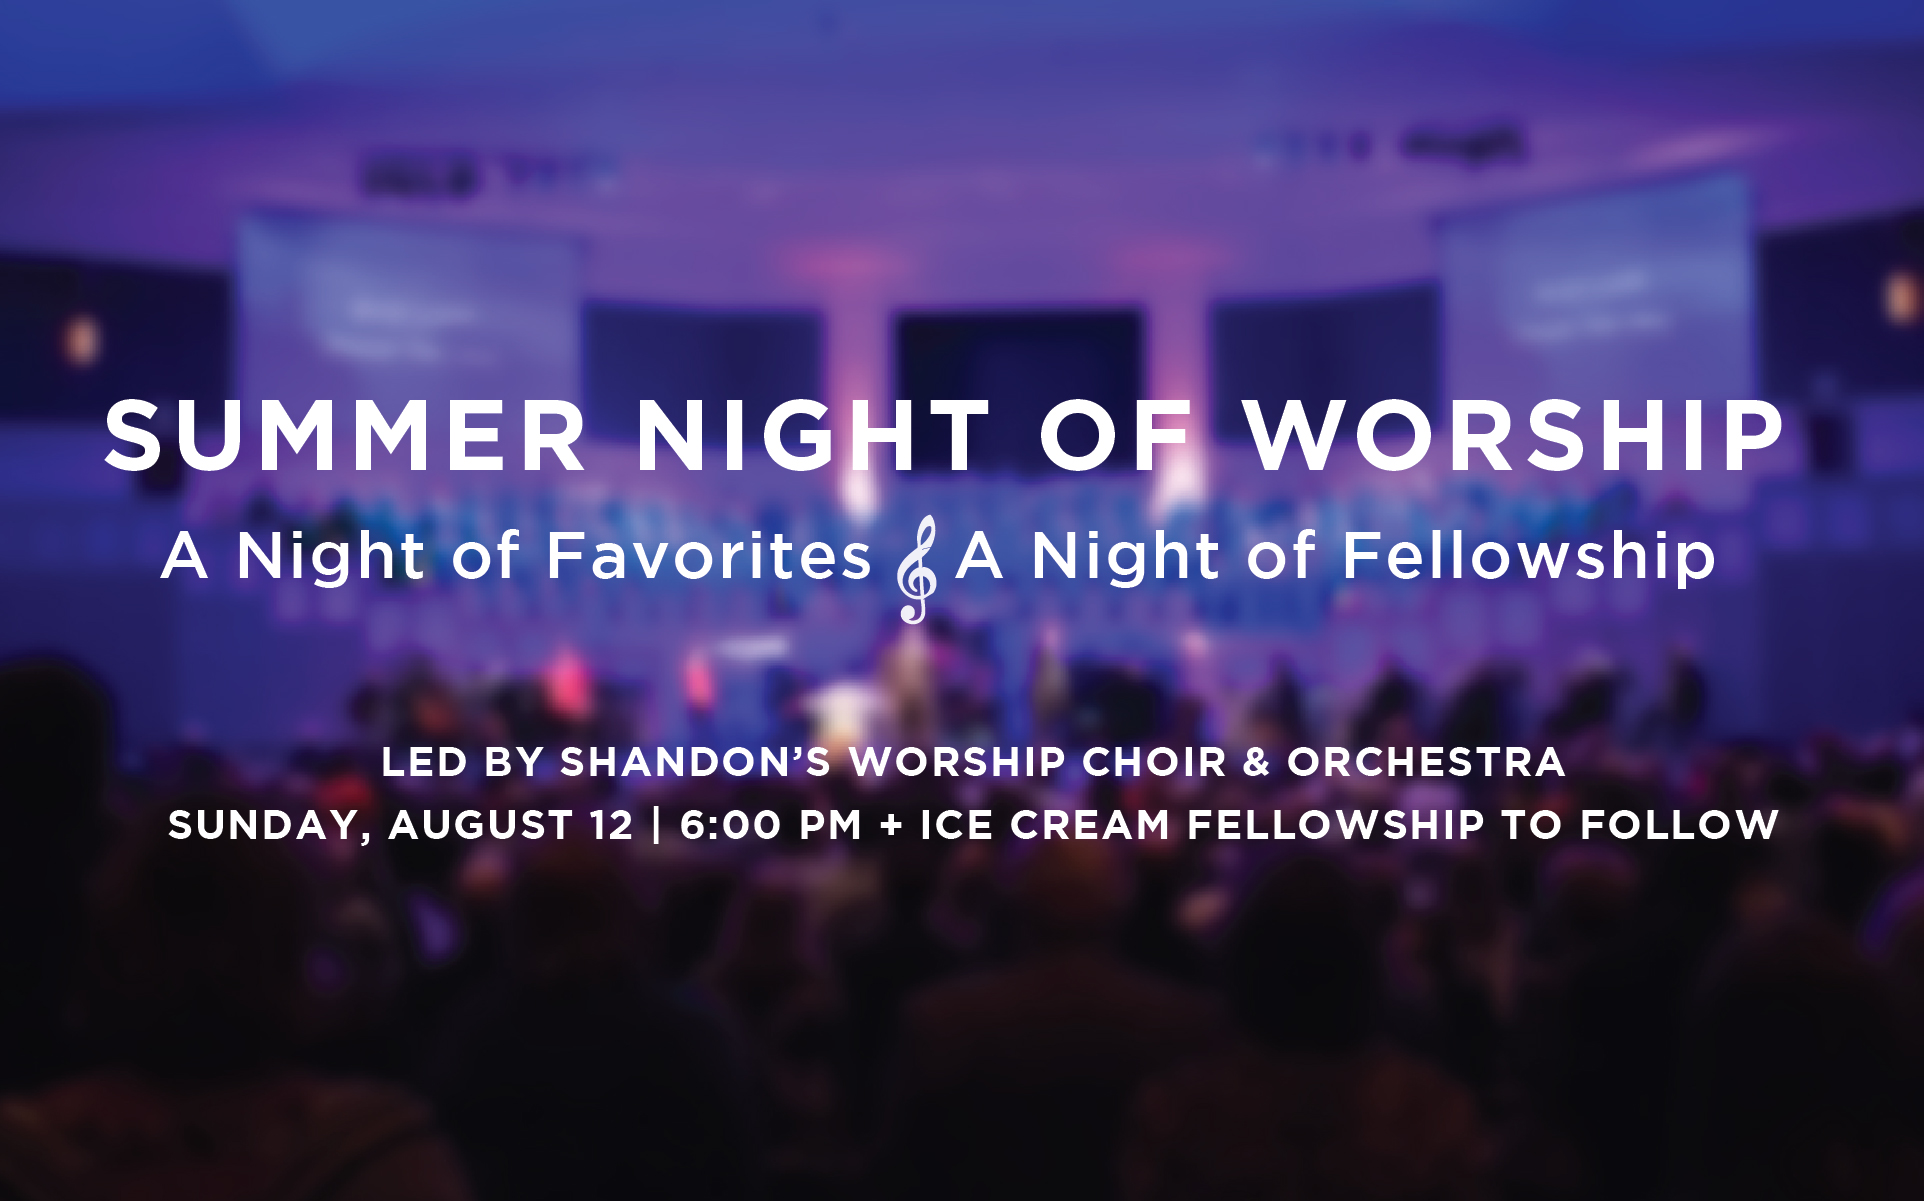 Summer Night of Worship